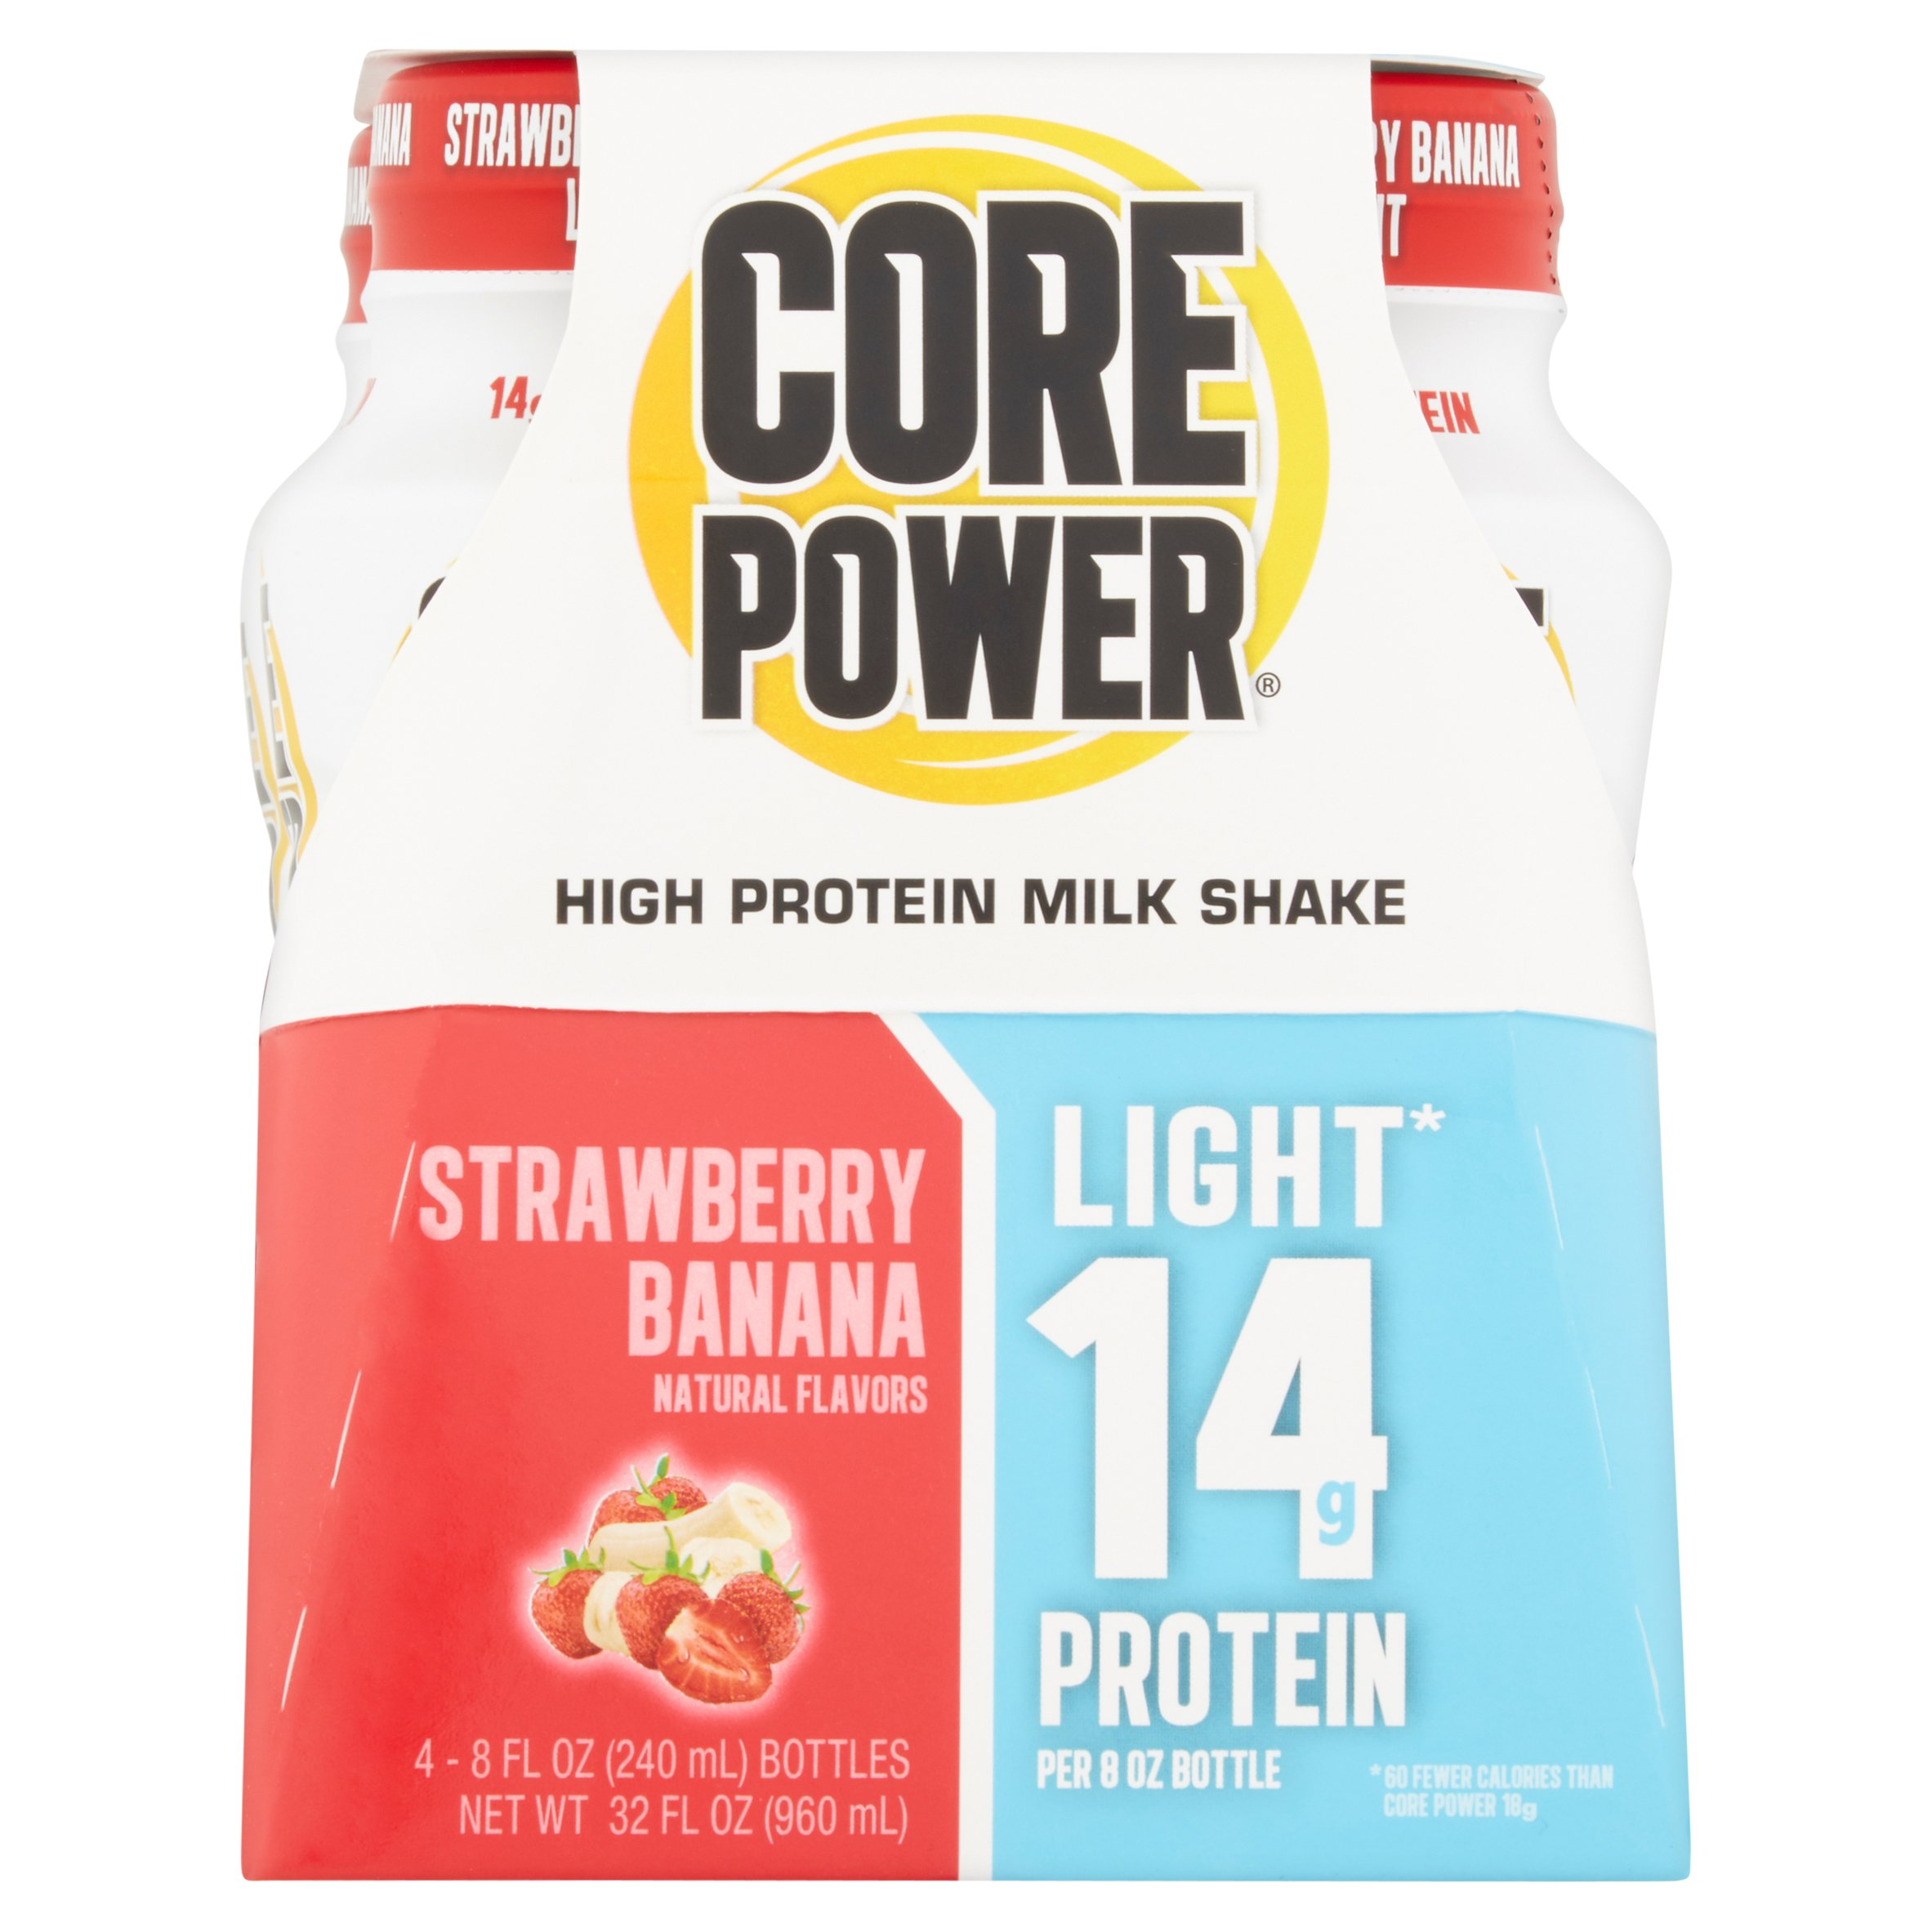 Core Power Strawberry Banana High Protein Milk Shake, 8 fl oz, 4 pack